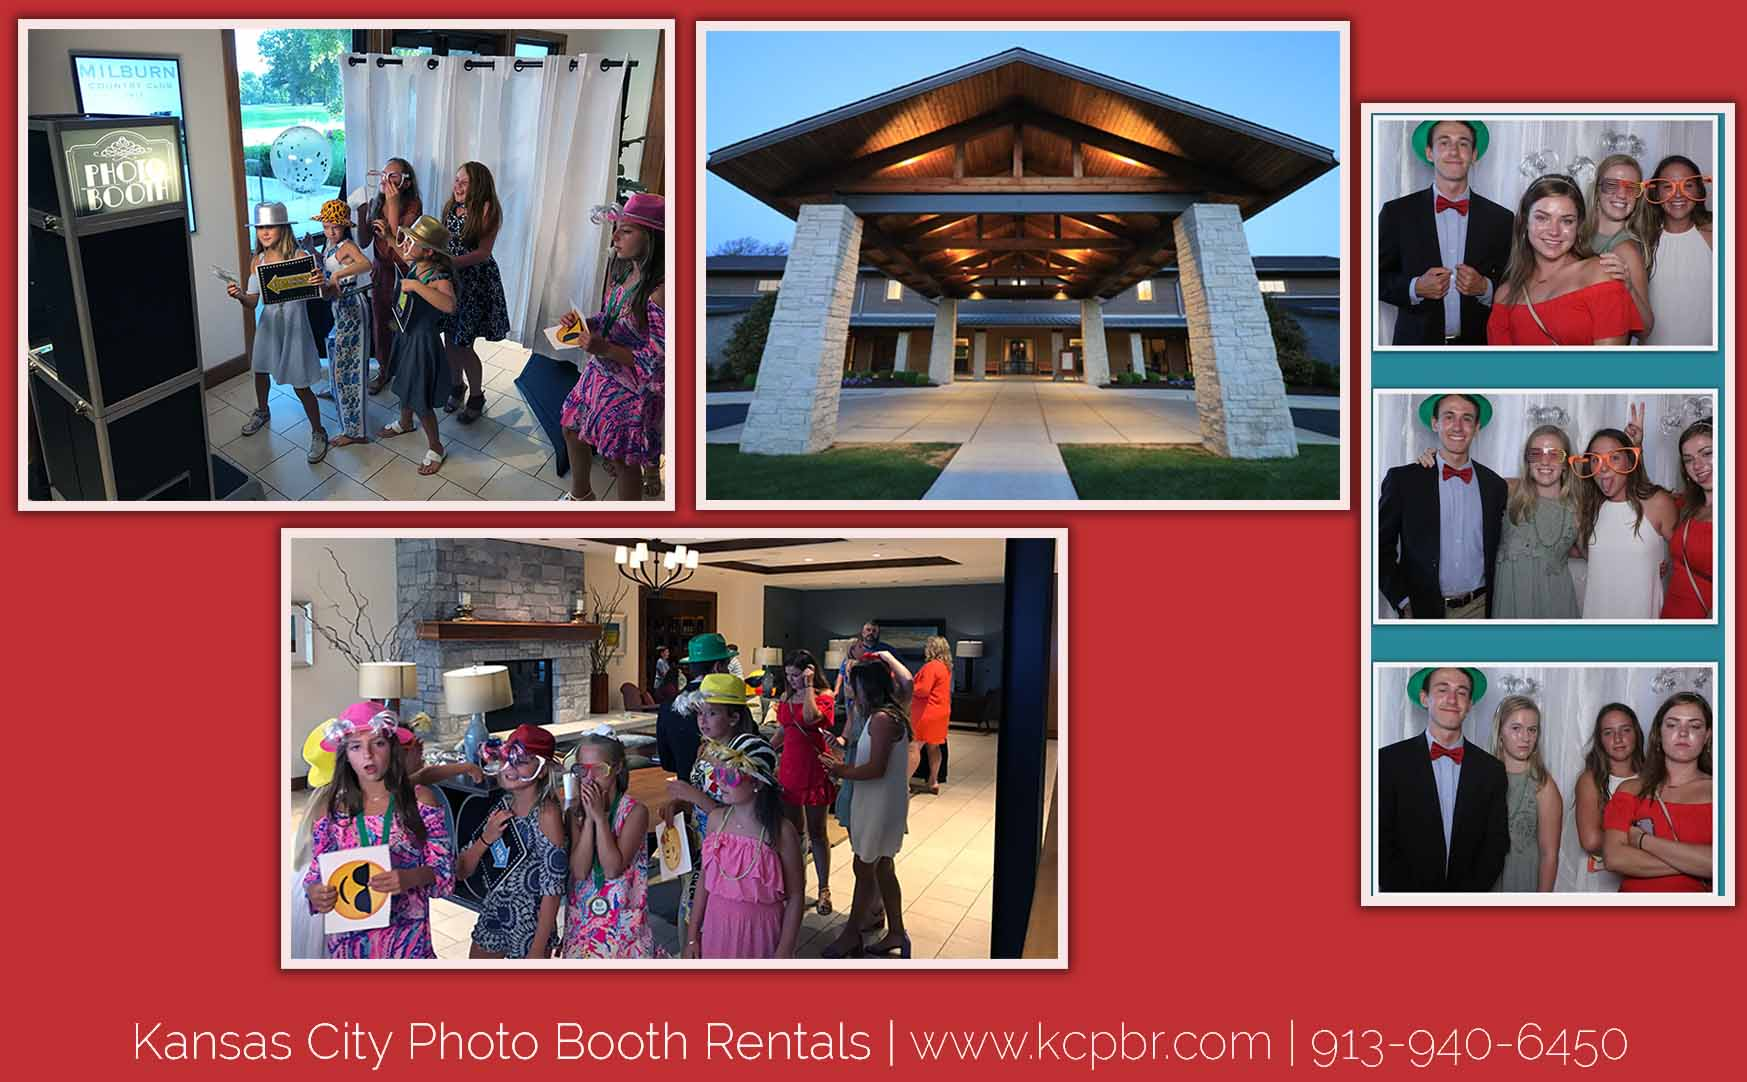 Kansas City Classic Photo Booth Rentals